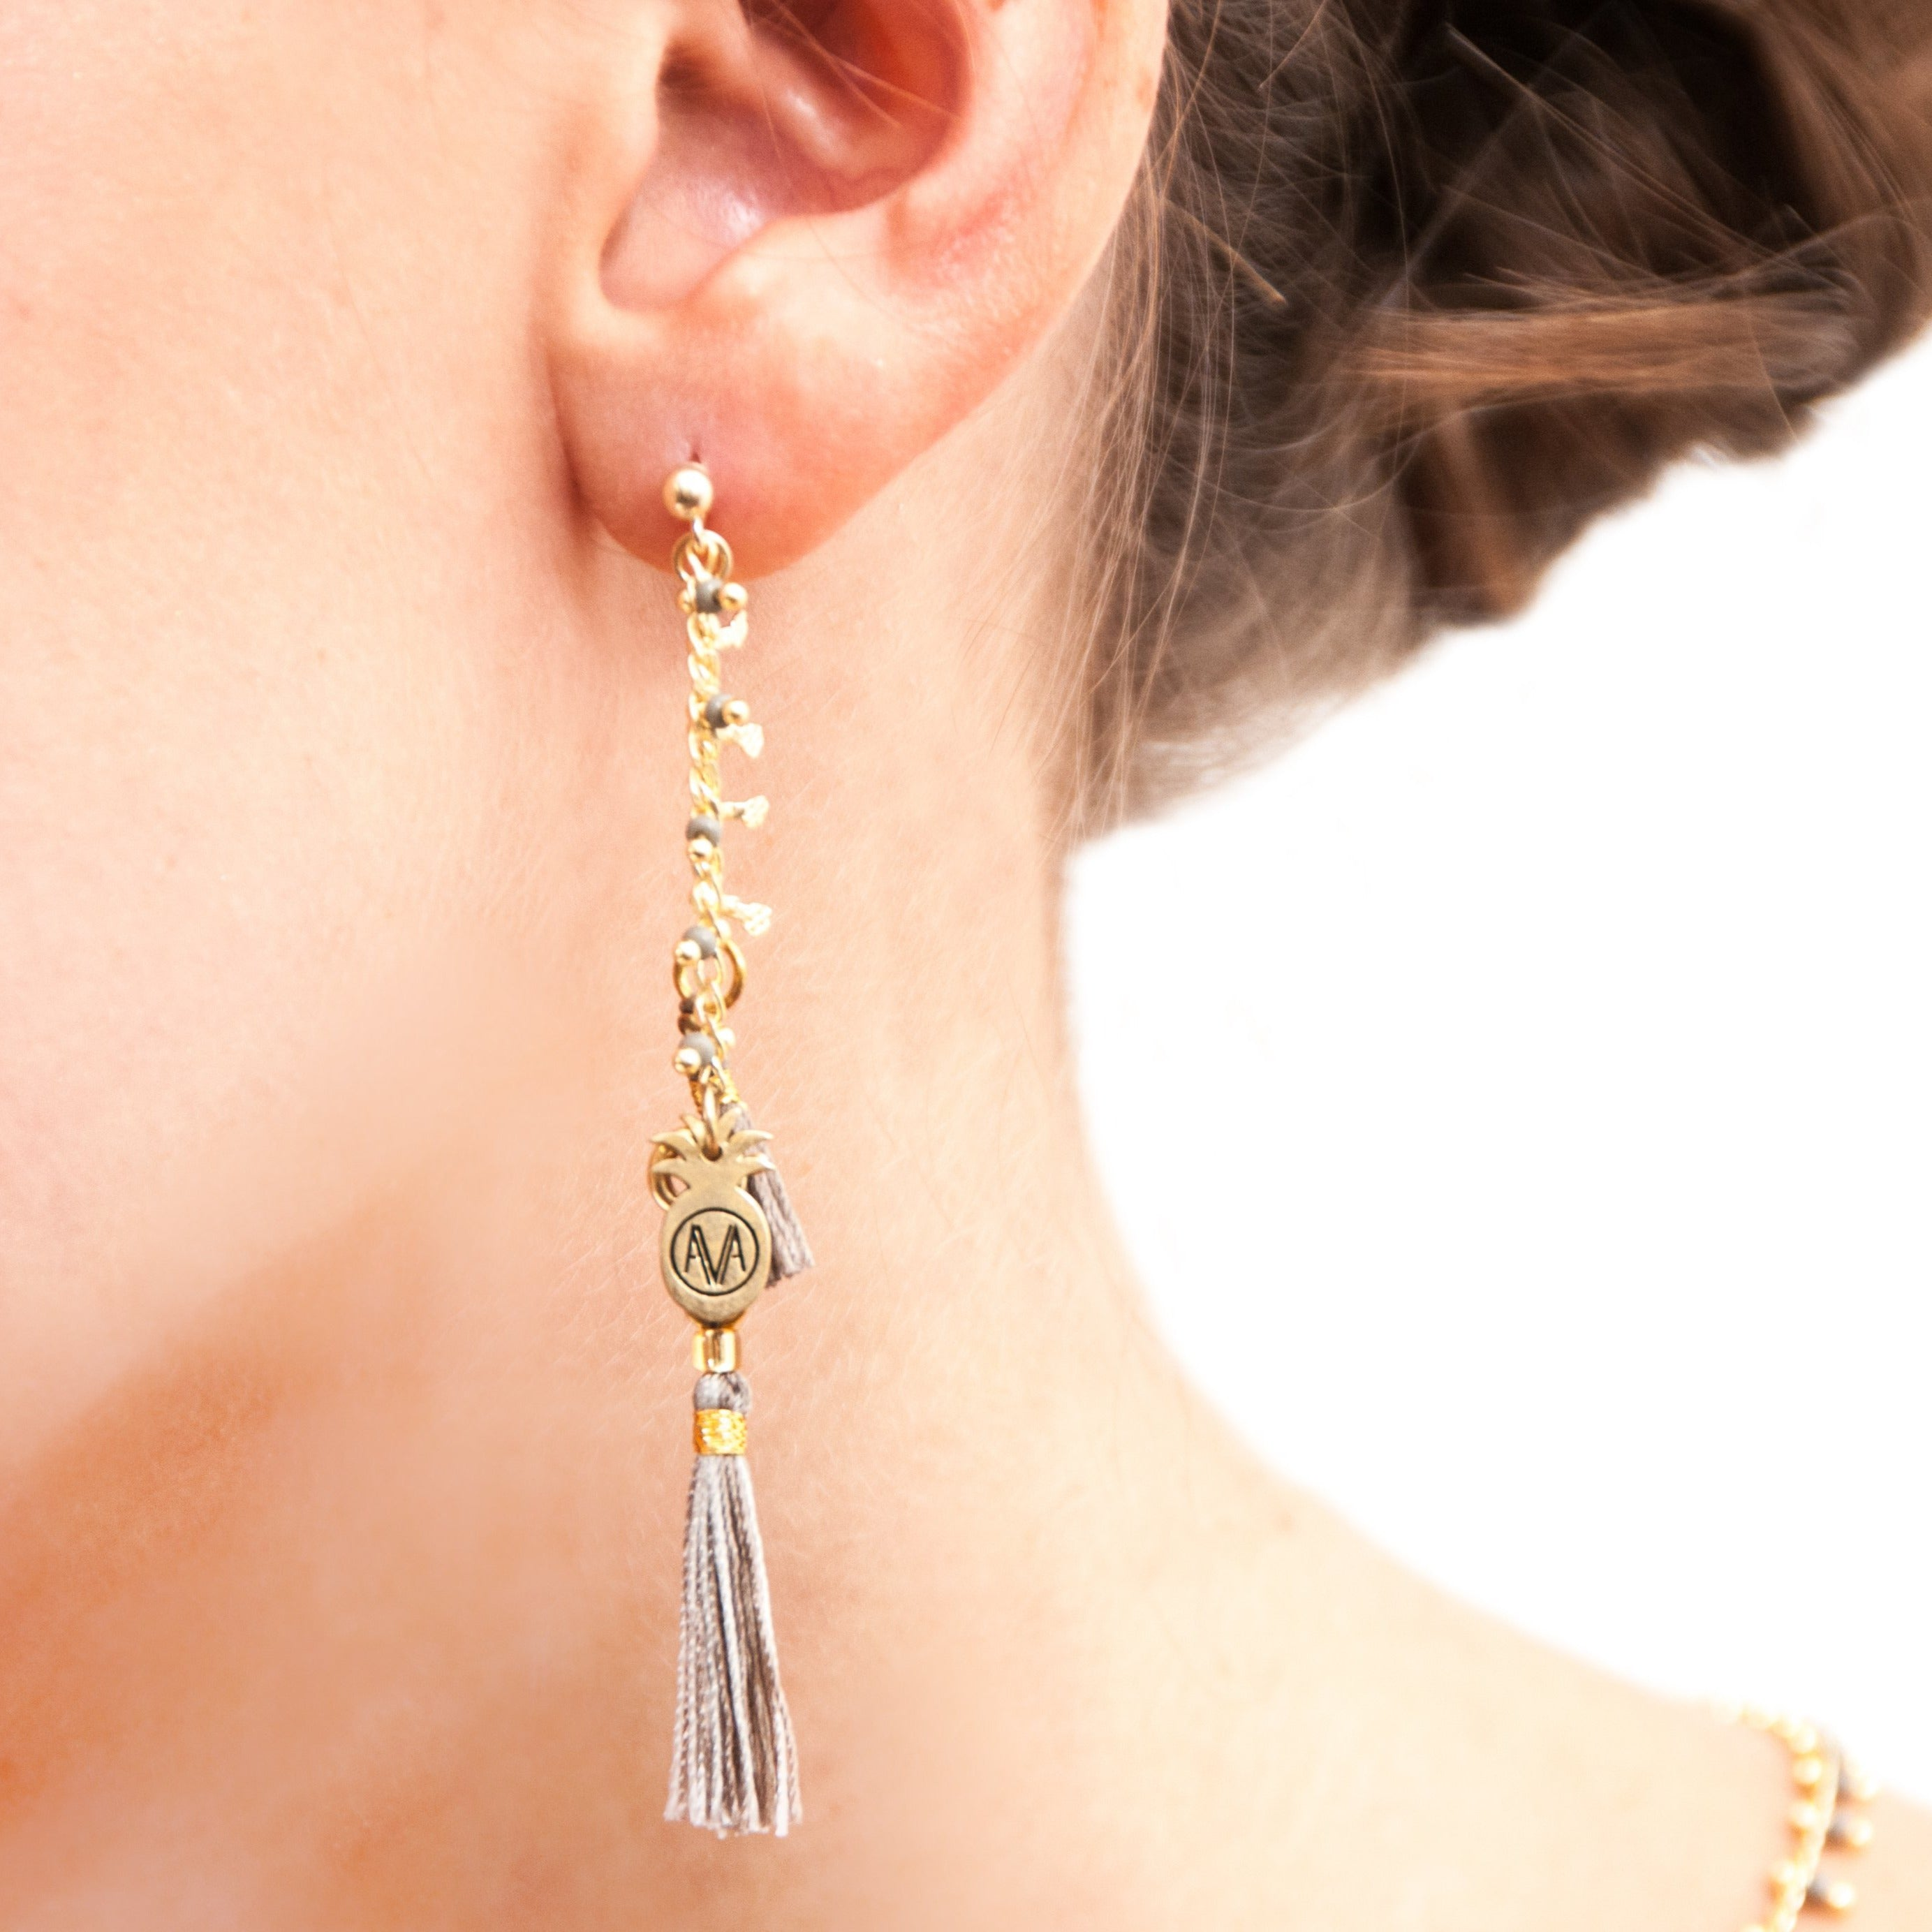 Carioca Earrings - Grey - Amadoria